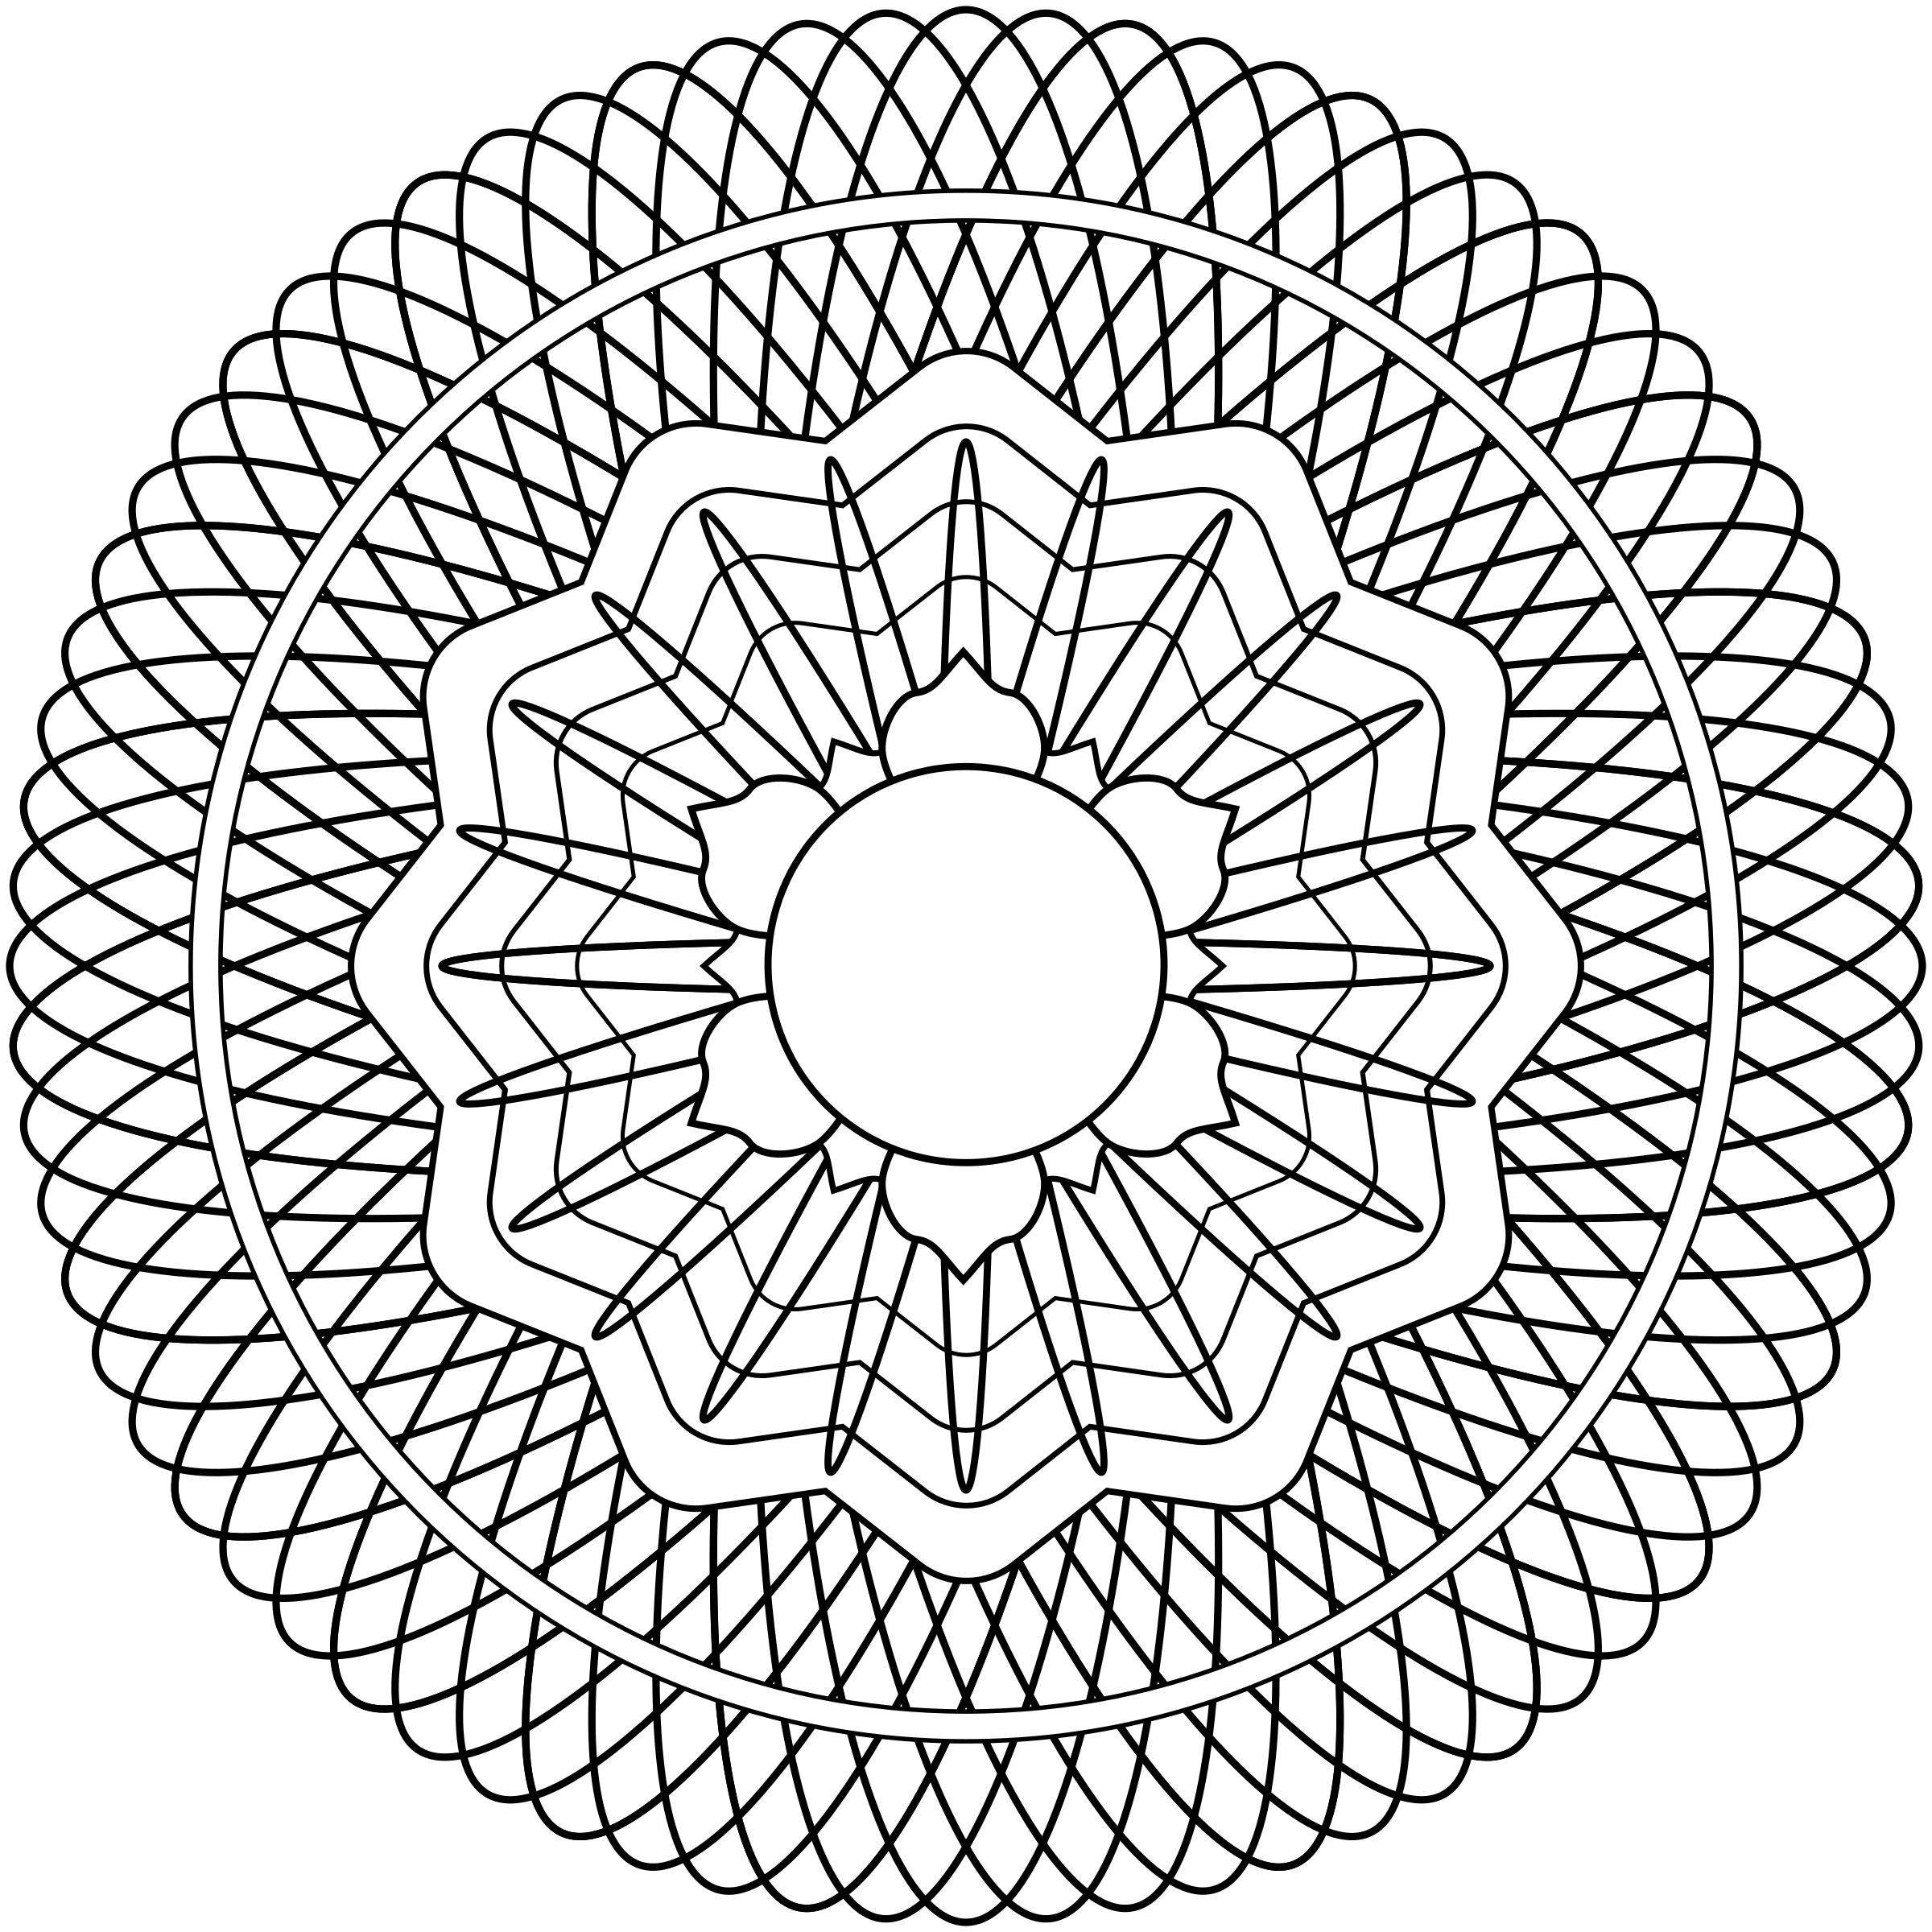 geometric tessellation with rhombus pattern coloring pages in addition Guilloche rosette2 furthermore ausmalbild spiral mandala malvorlage additionally Geometric Coloring Page as well geo20 also  besides  furthermore spiral sphere coloring pages   pagespeed ce sK25gl26i2 besides pTqpkgGT9 as well  also . on spiral geometrical coloring pages printable